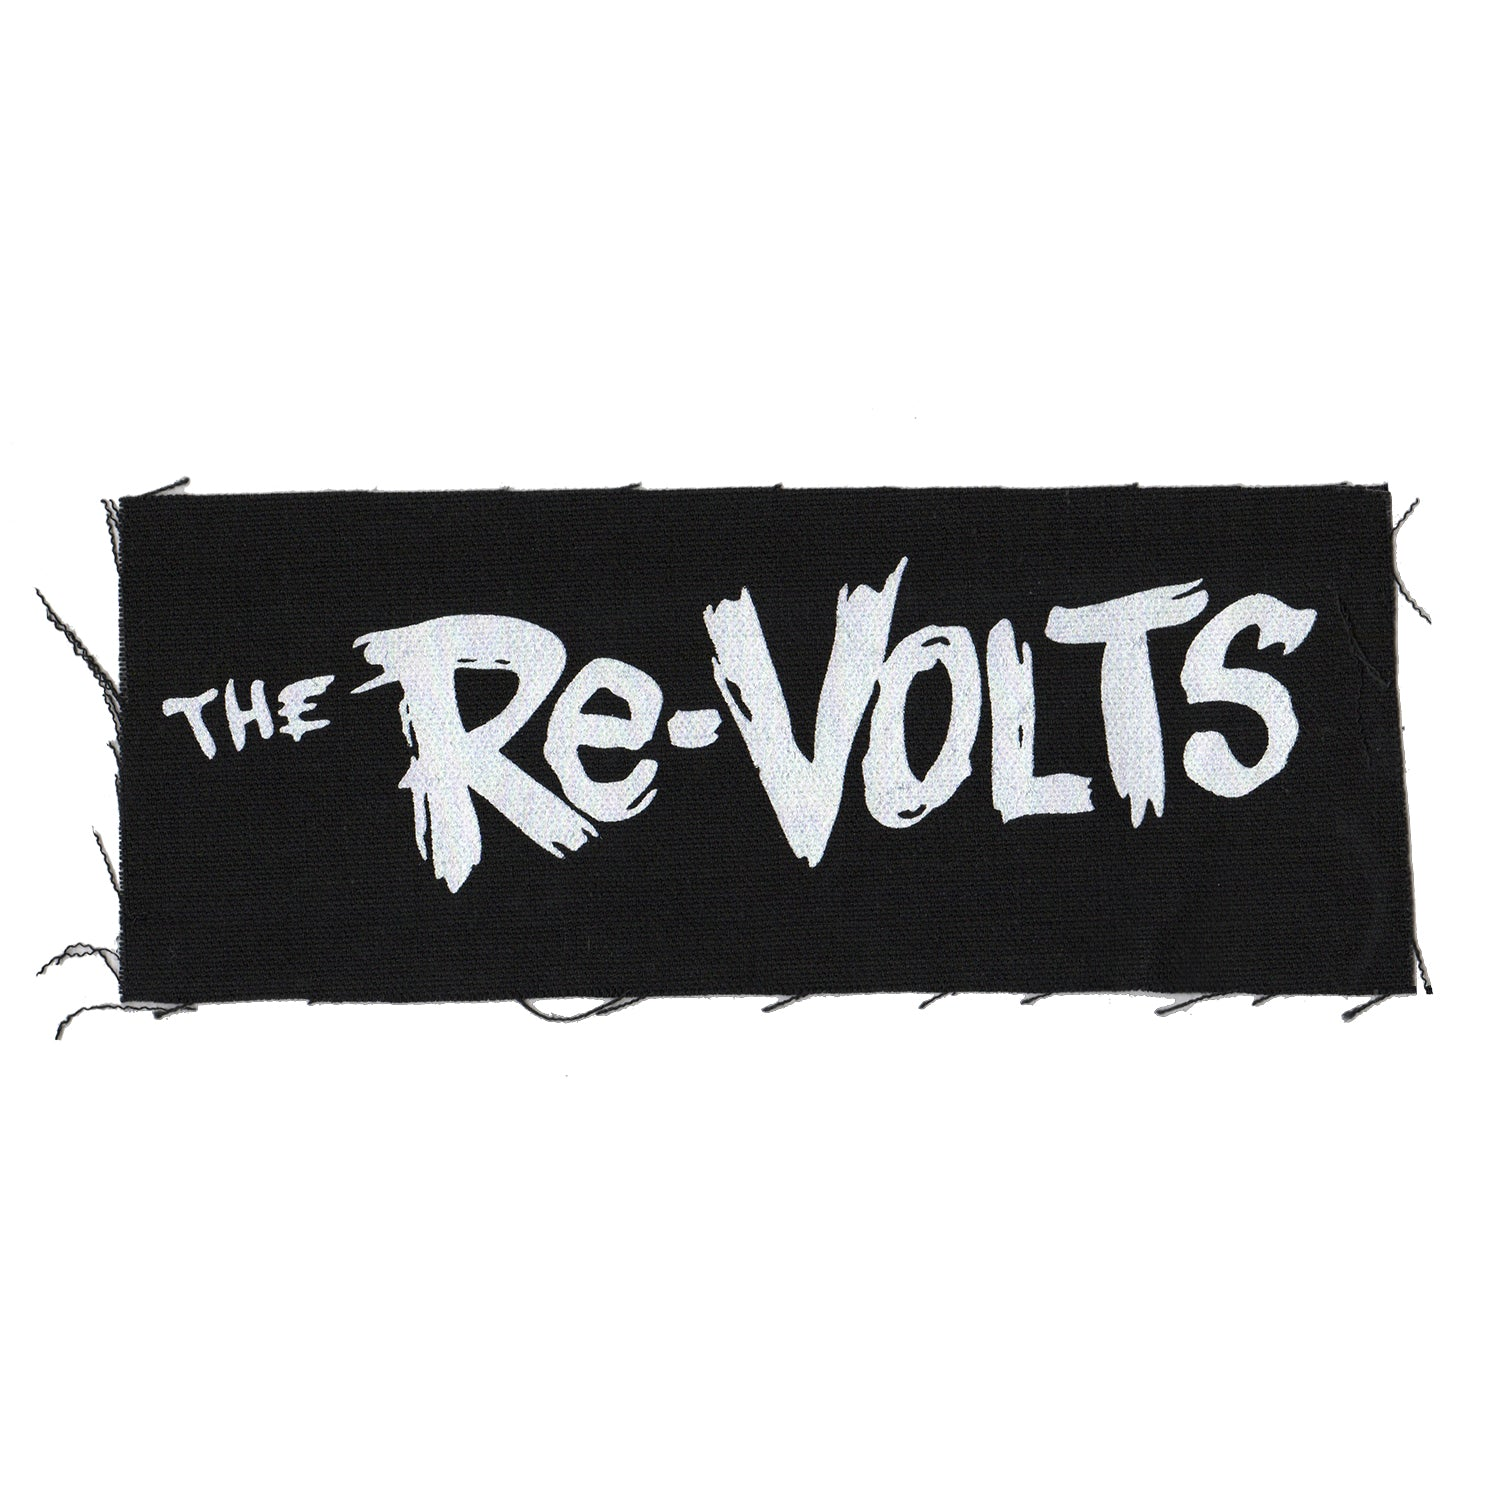 "The Re-Volts - Text Logo - Black - Patch - Cloth - Screenprinted - 8"" x 3"""